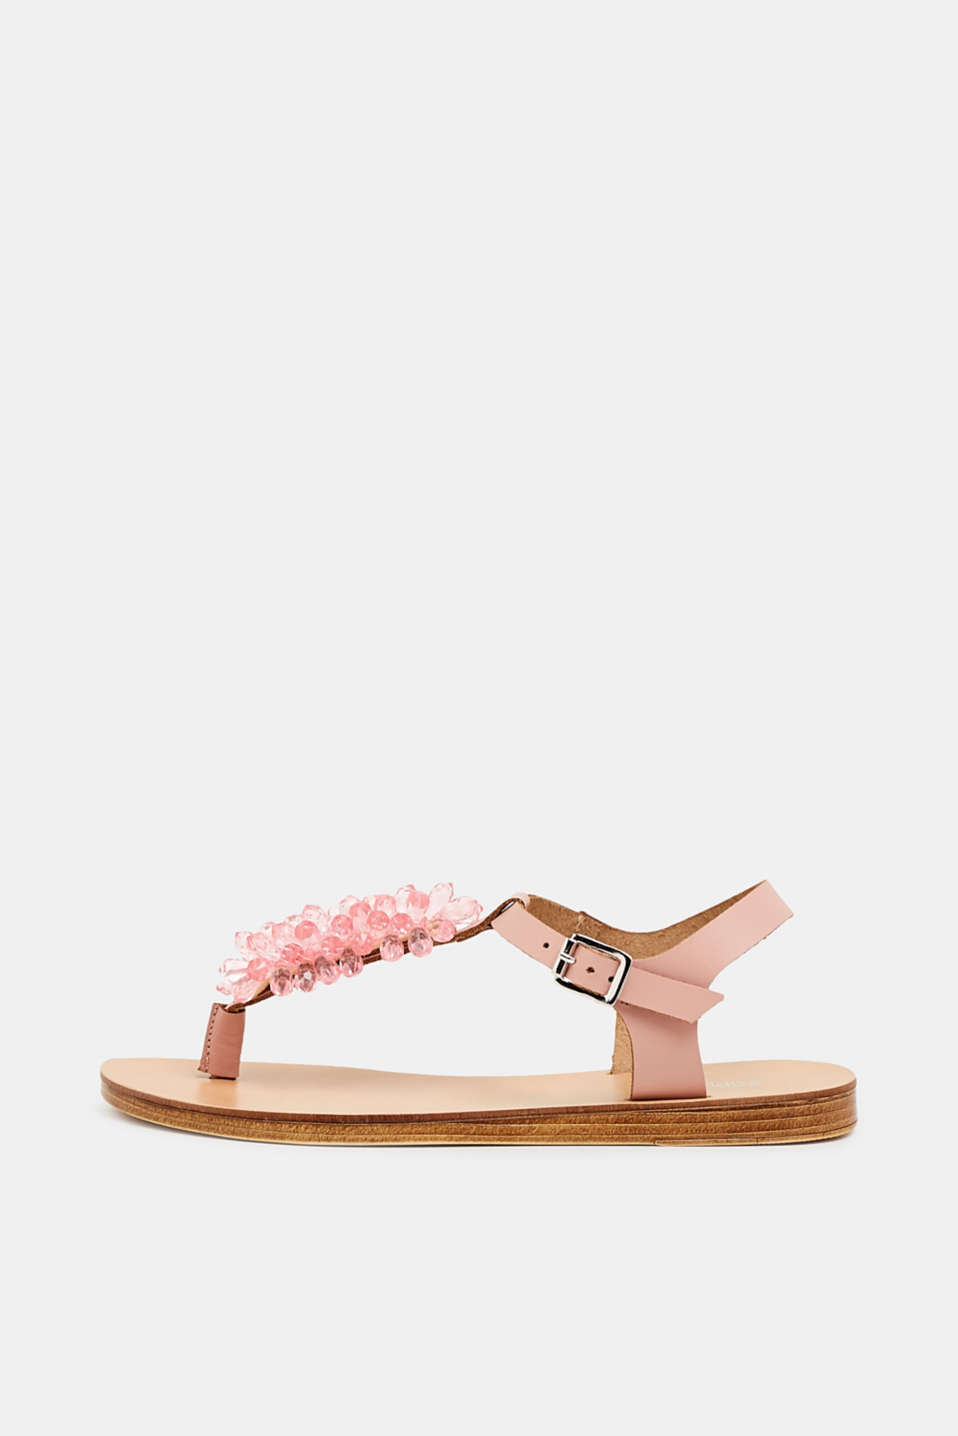 Esprit - Toe-post sandals with facet-cut stones